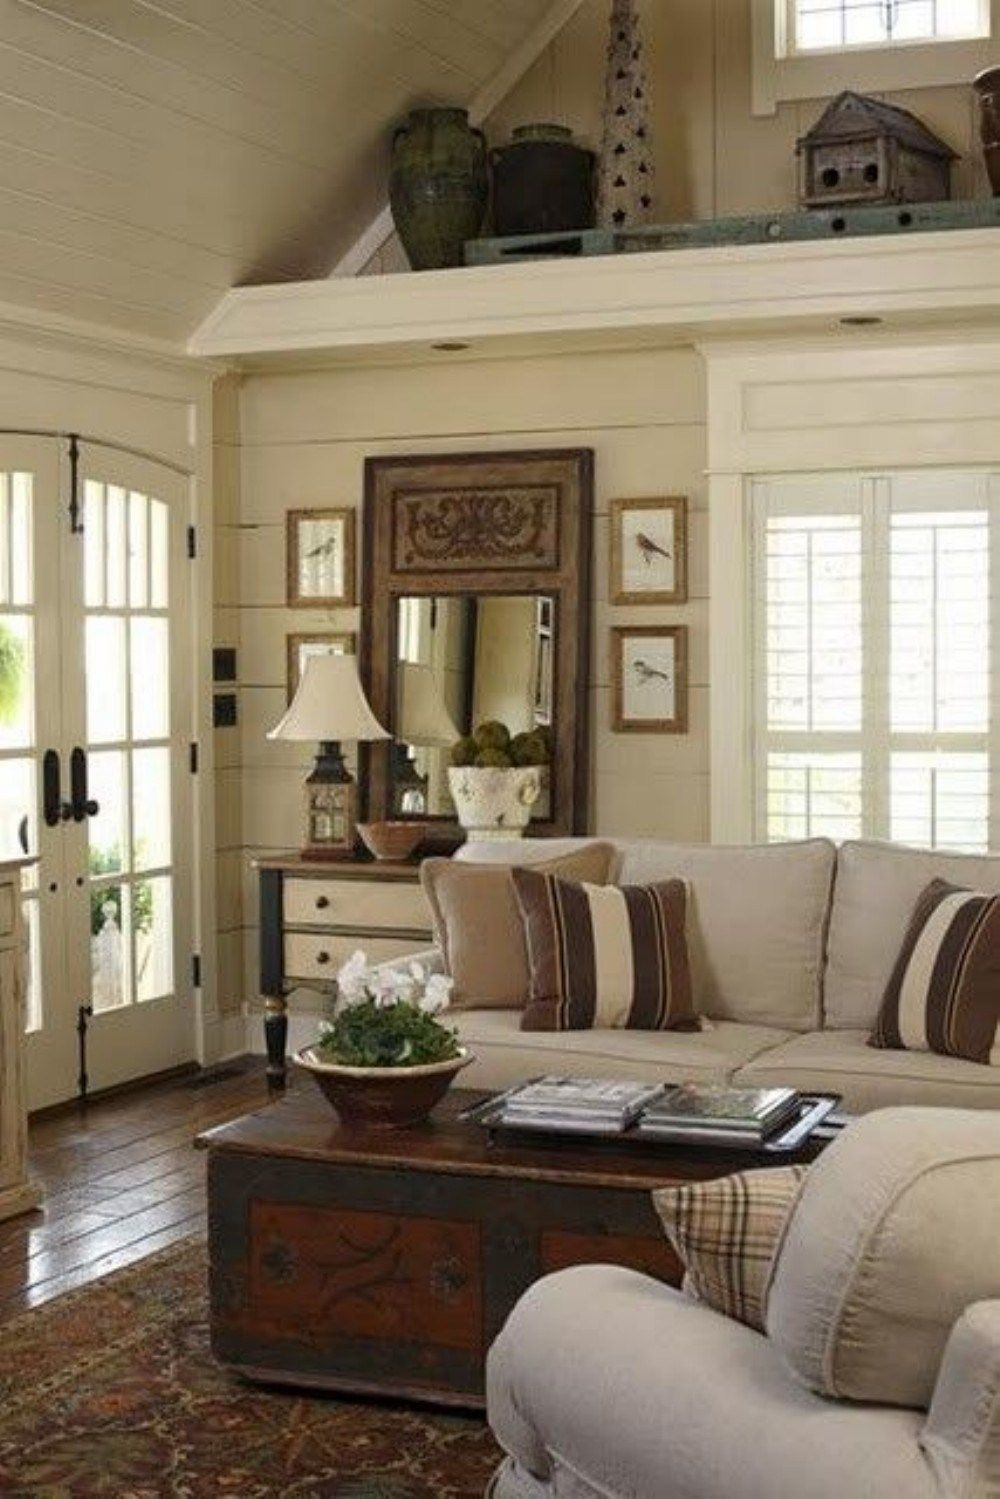 Country Living Room Designs Awesome French Country Living Room Design Ideas 21  Coo Architecture Decorating Design